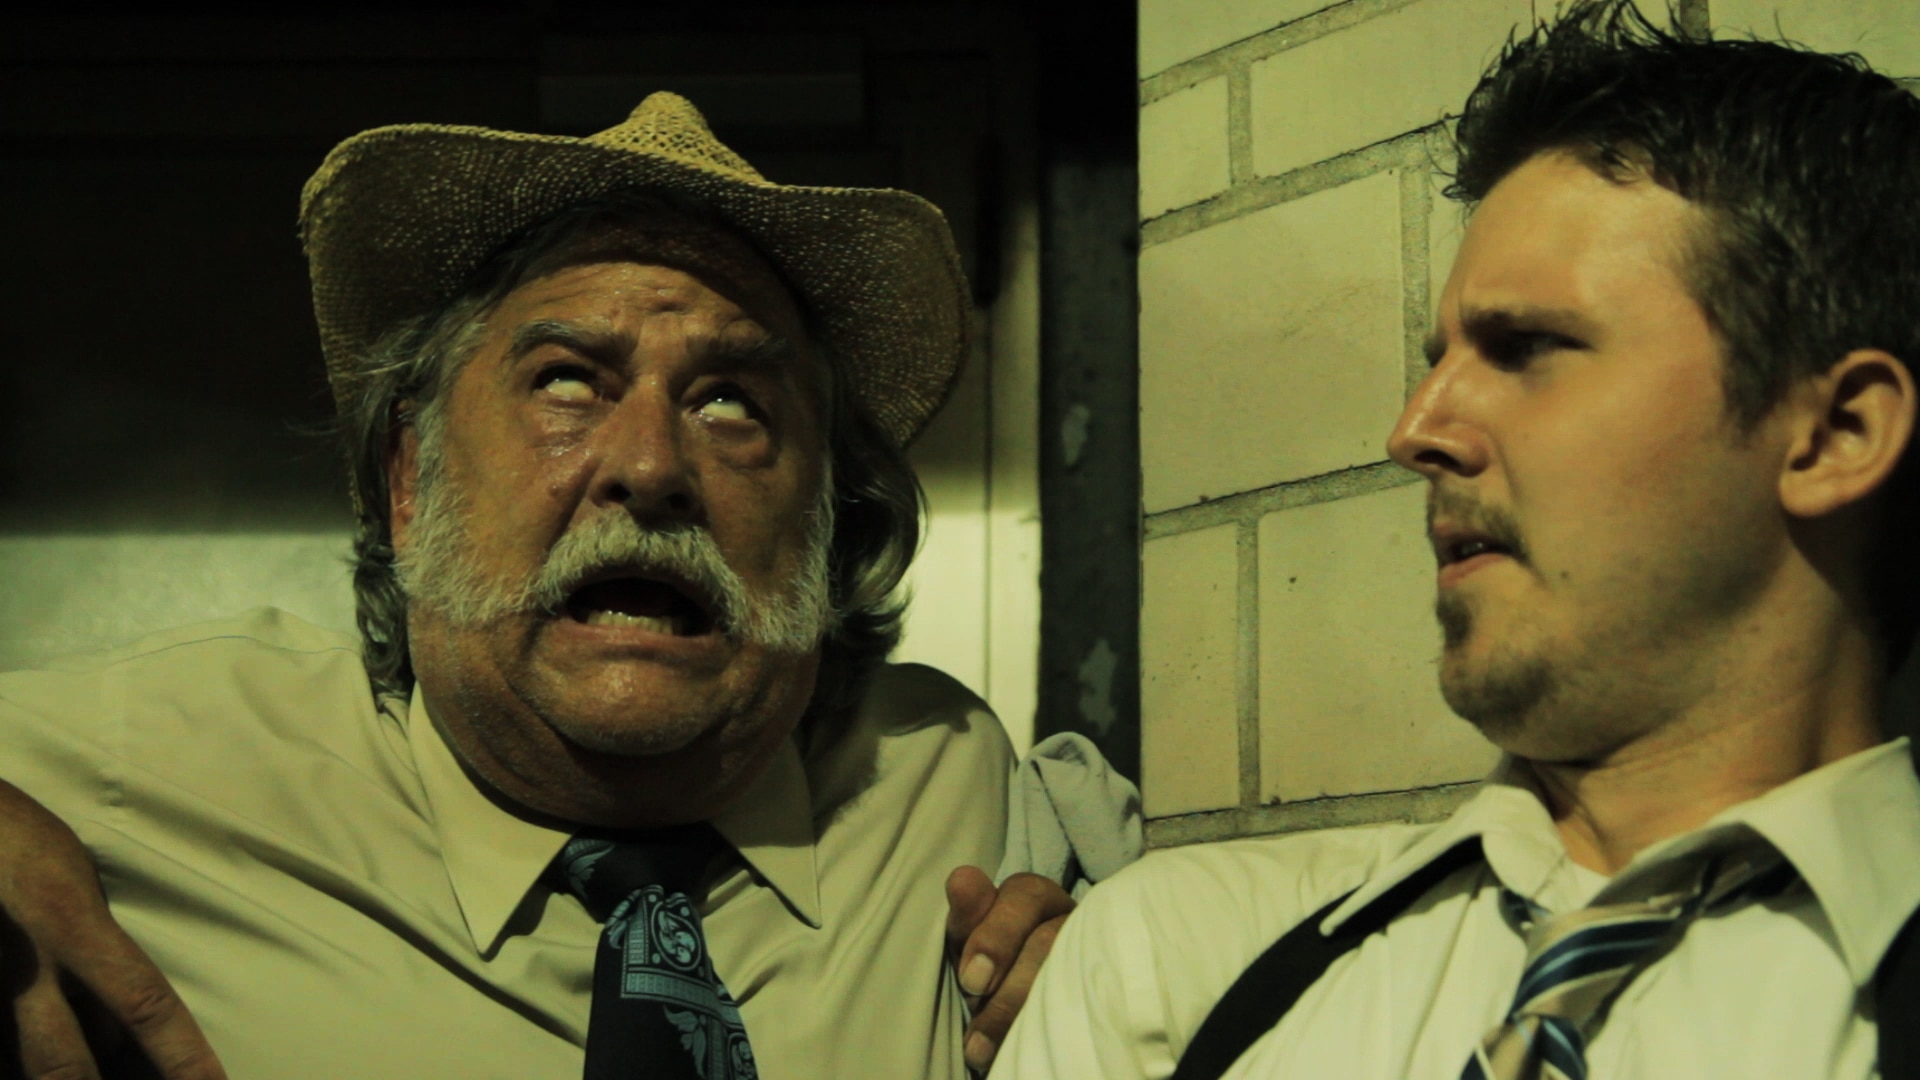 shabby 2 - New Stills and Full Trailer Arrive for Dick Johnson & Tommygun vs. The Cannibal Cop